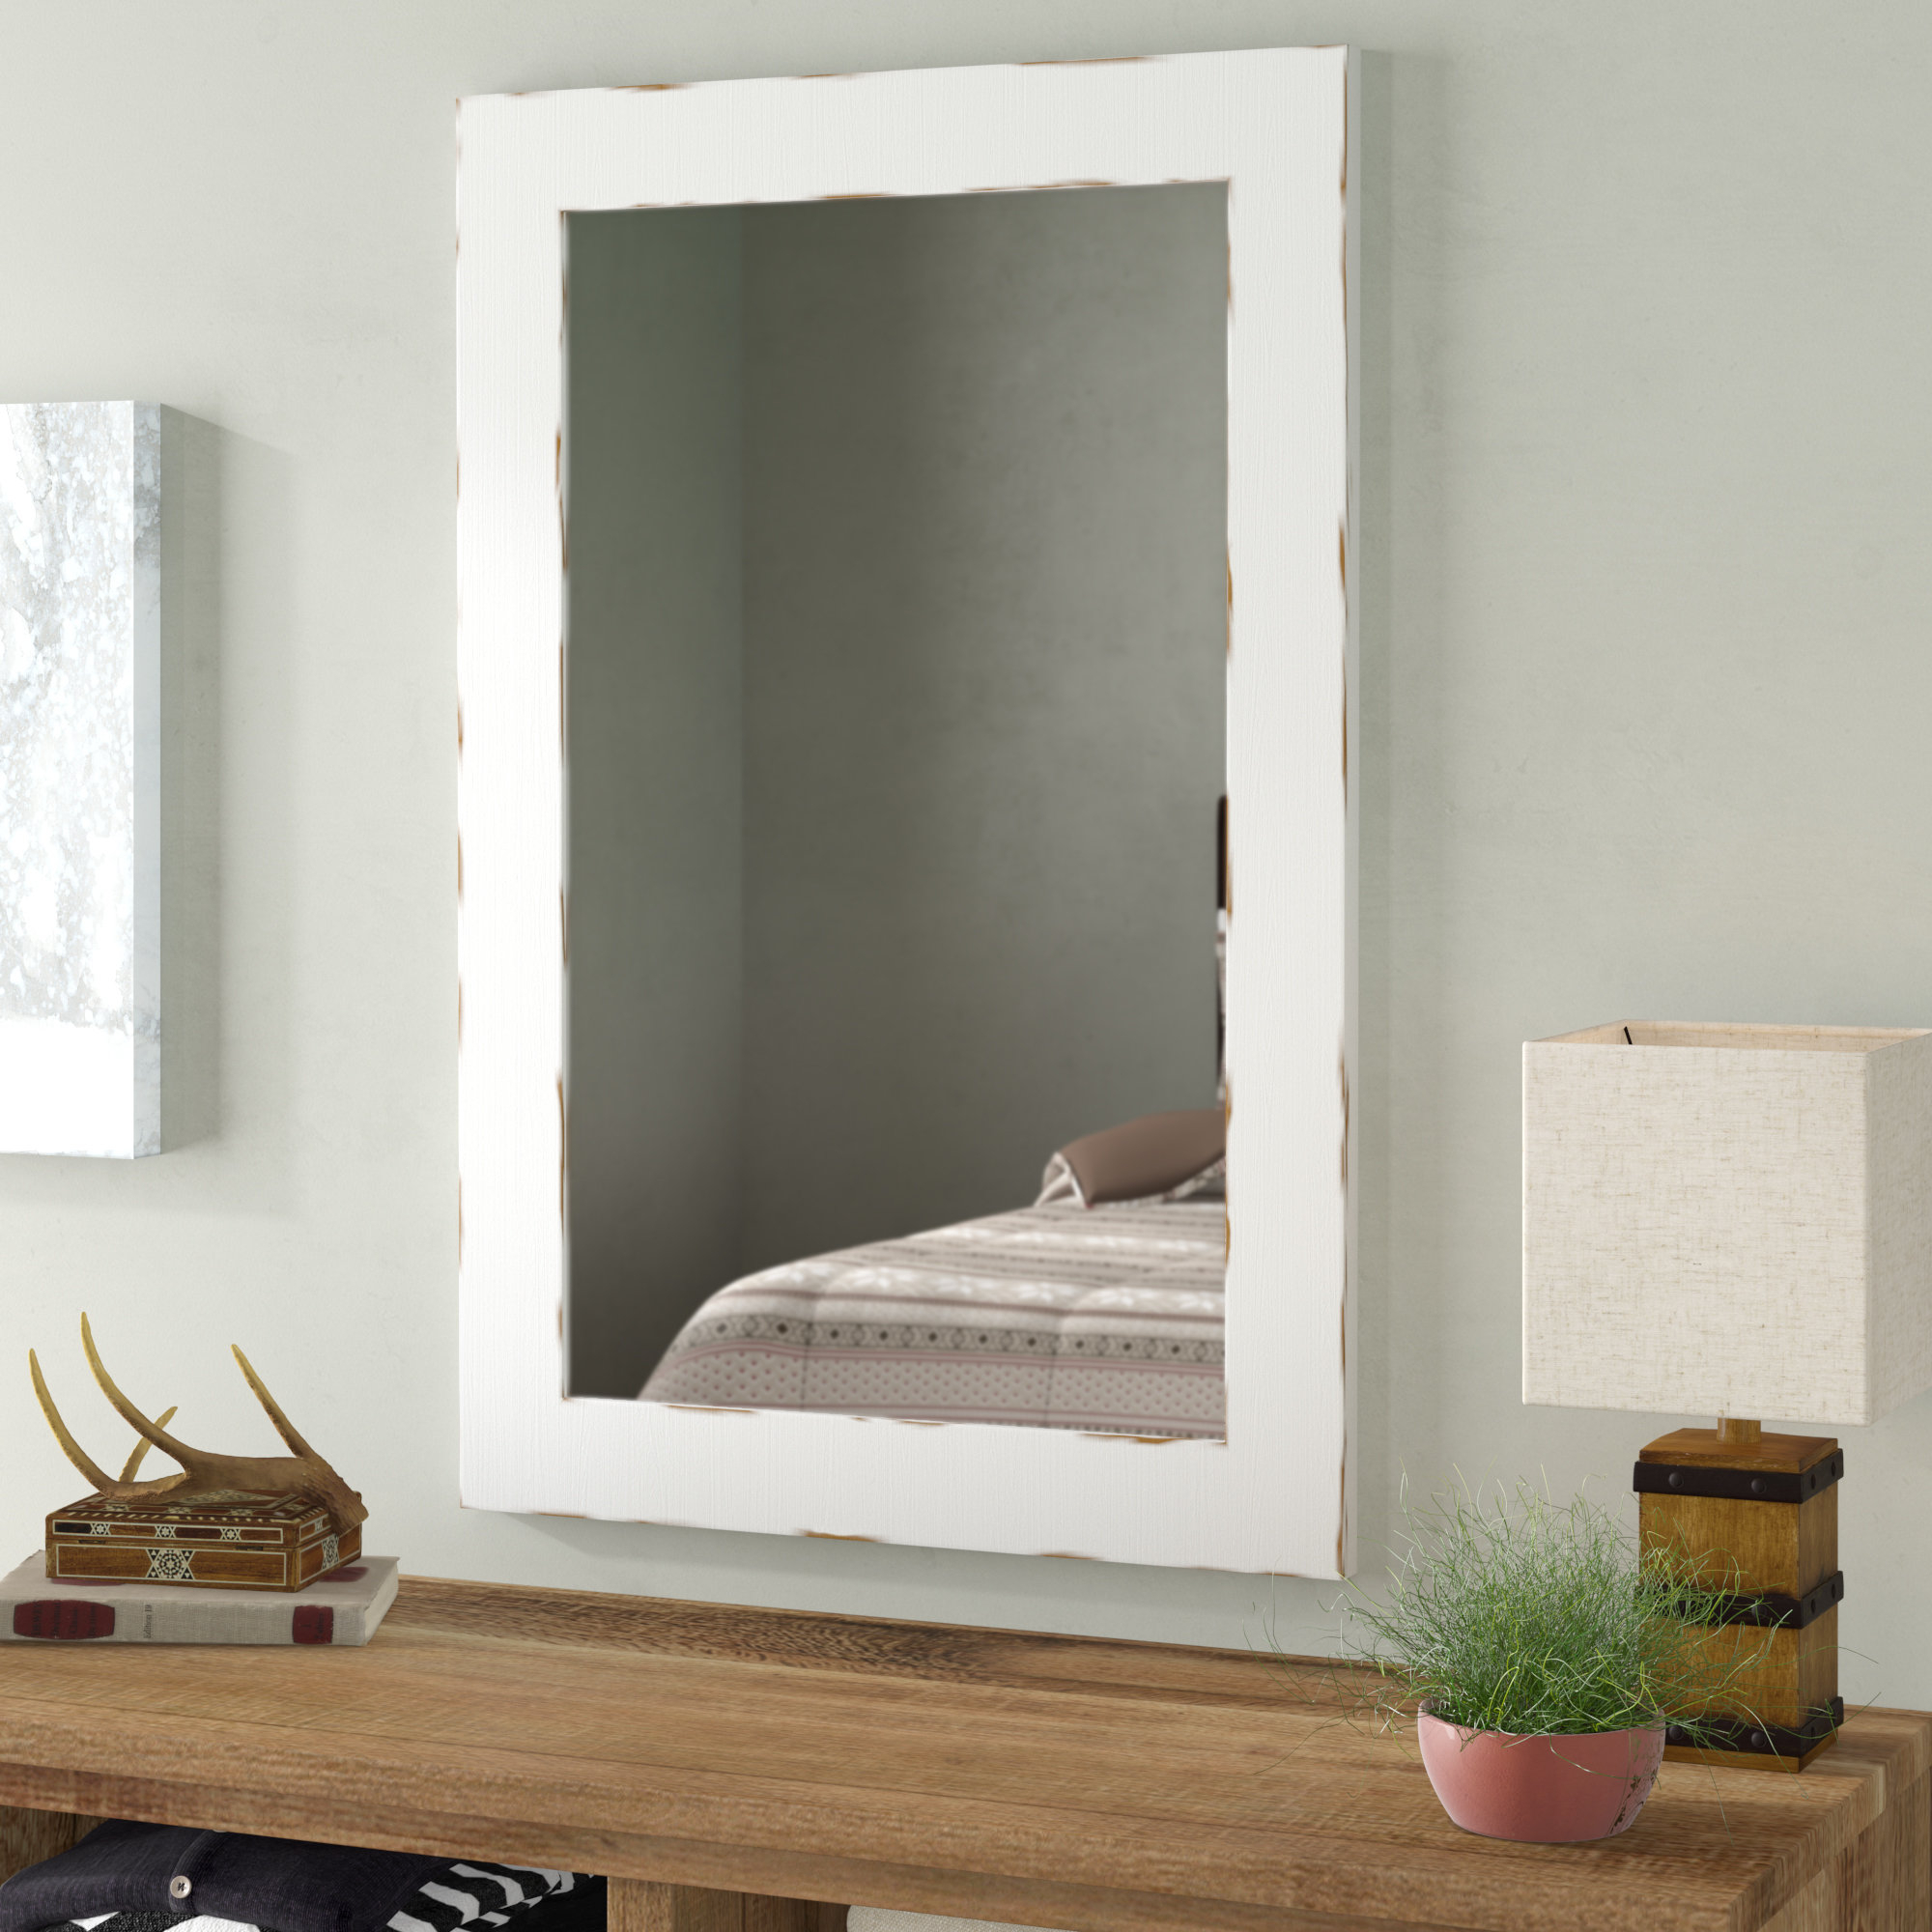 Shabby Rustic Mirror | Wayfair For Epinal Shabby Elegance Wall Mirrors (View 26 of 30)